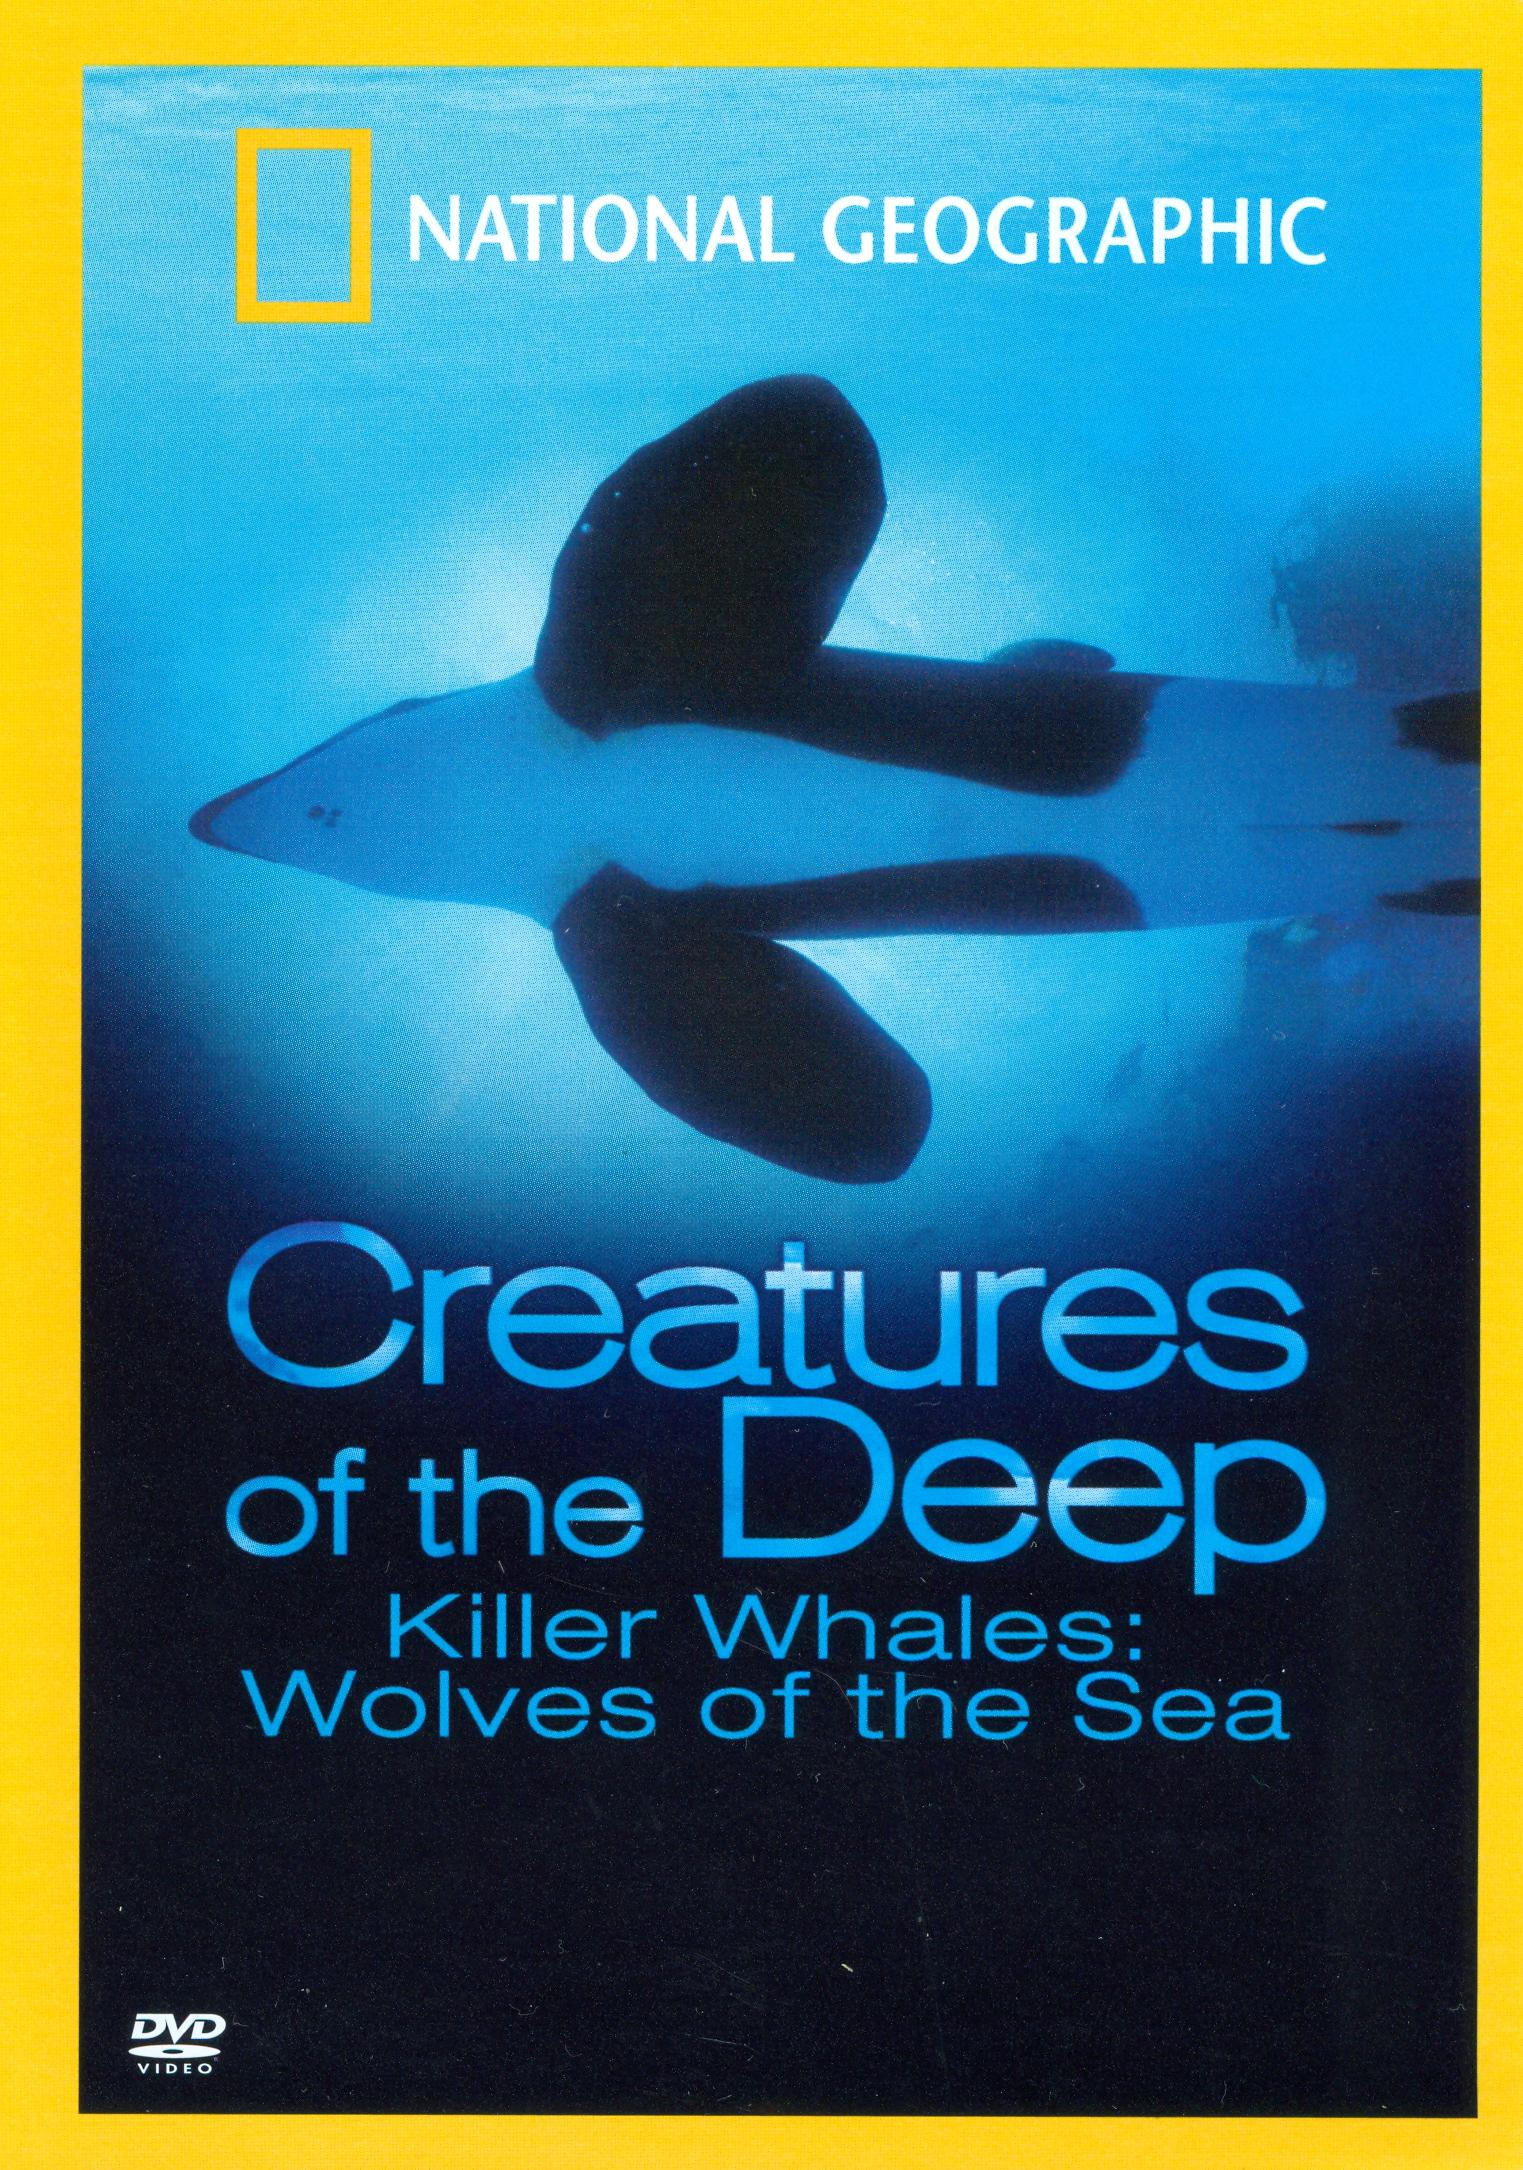 National Geographic: Killer Whales - Wolves of the Sea